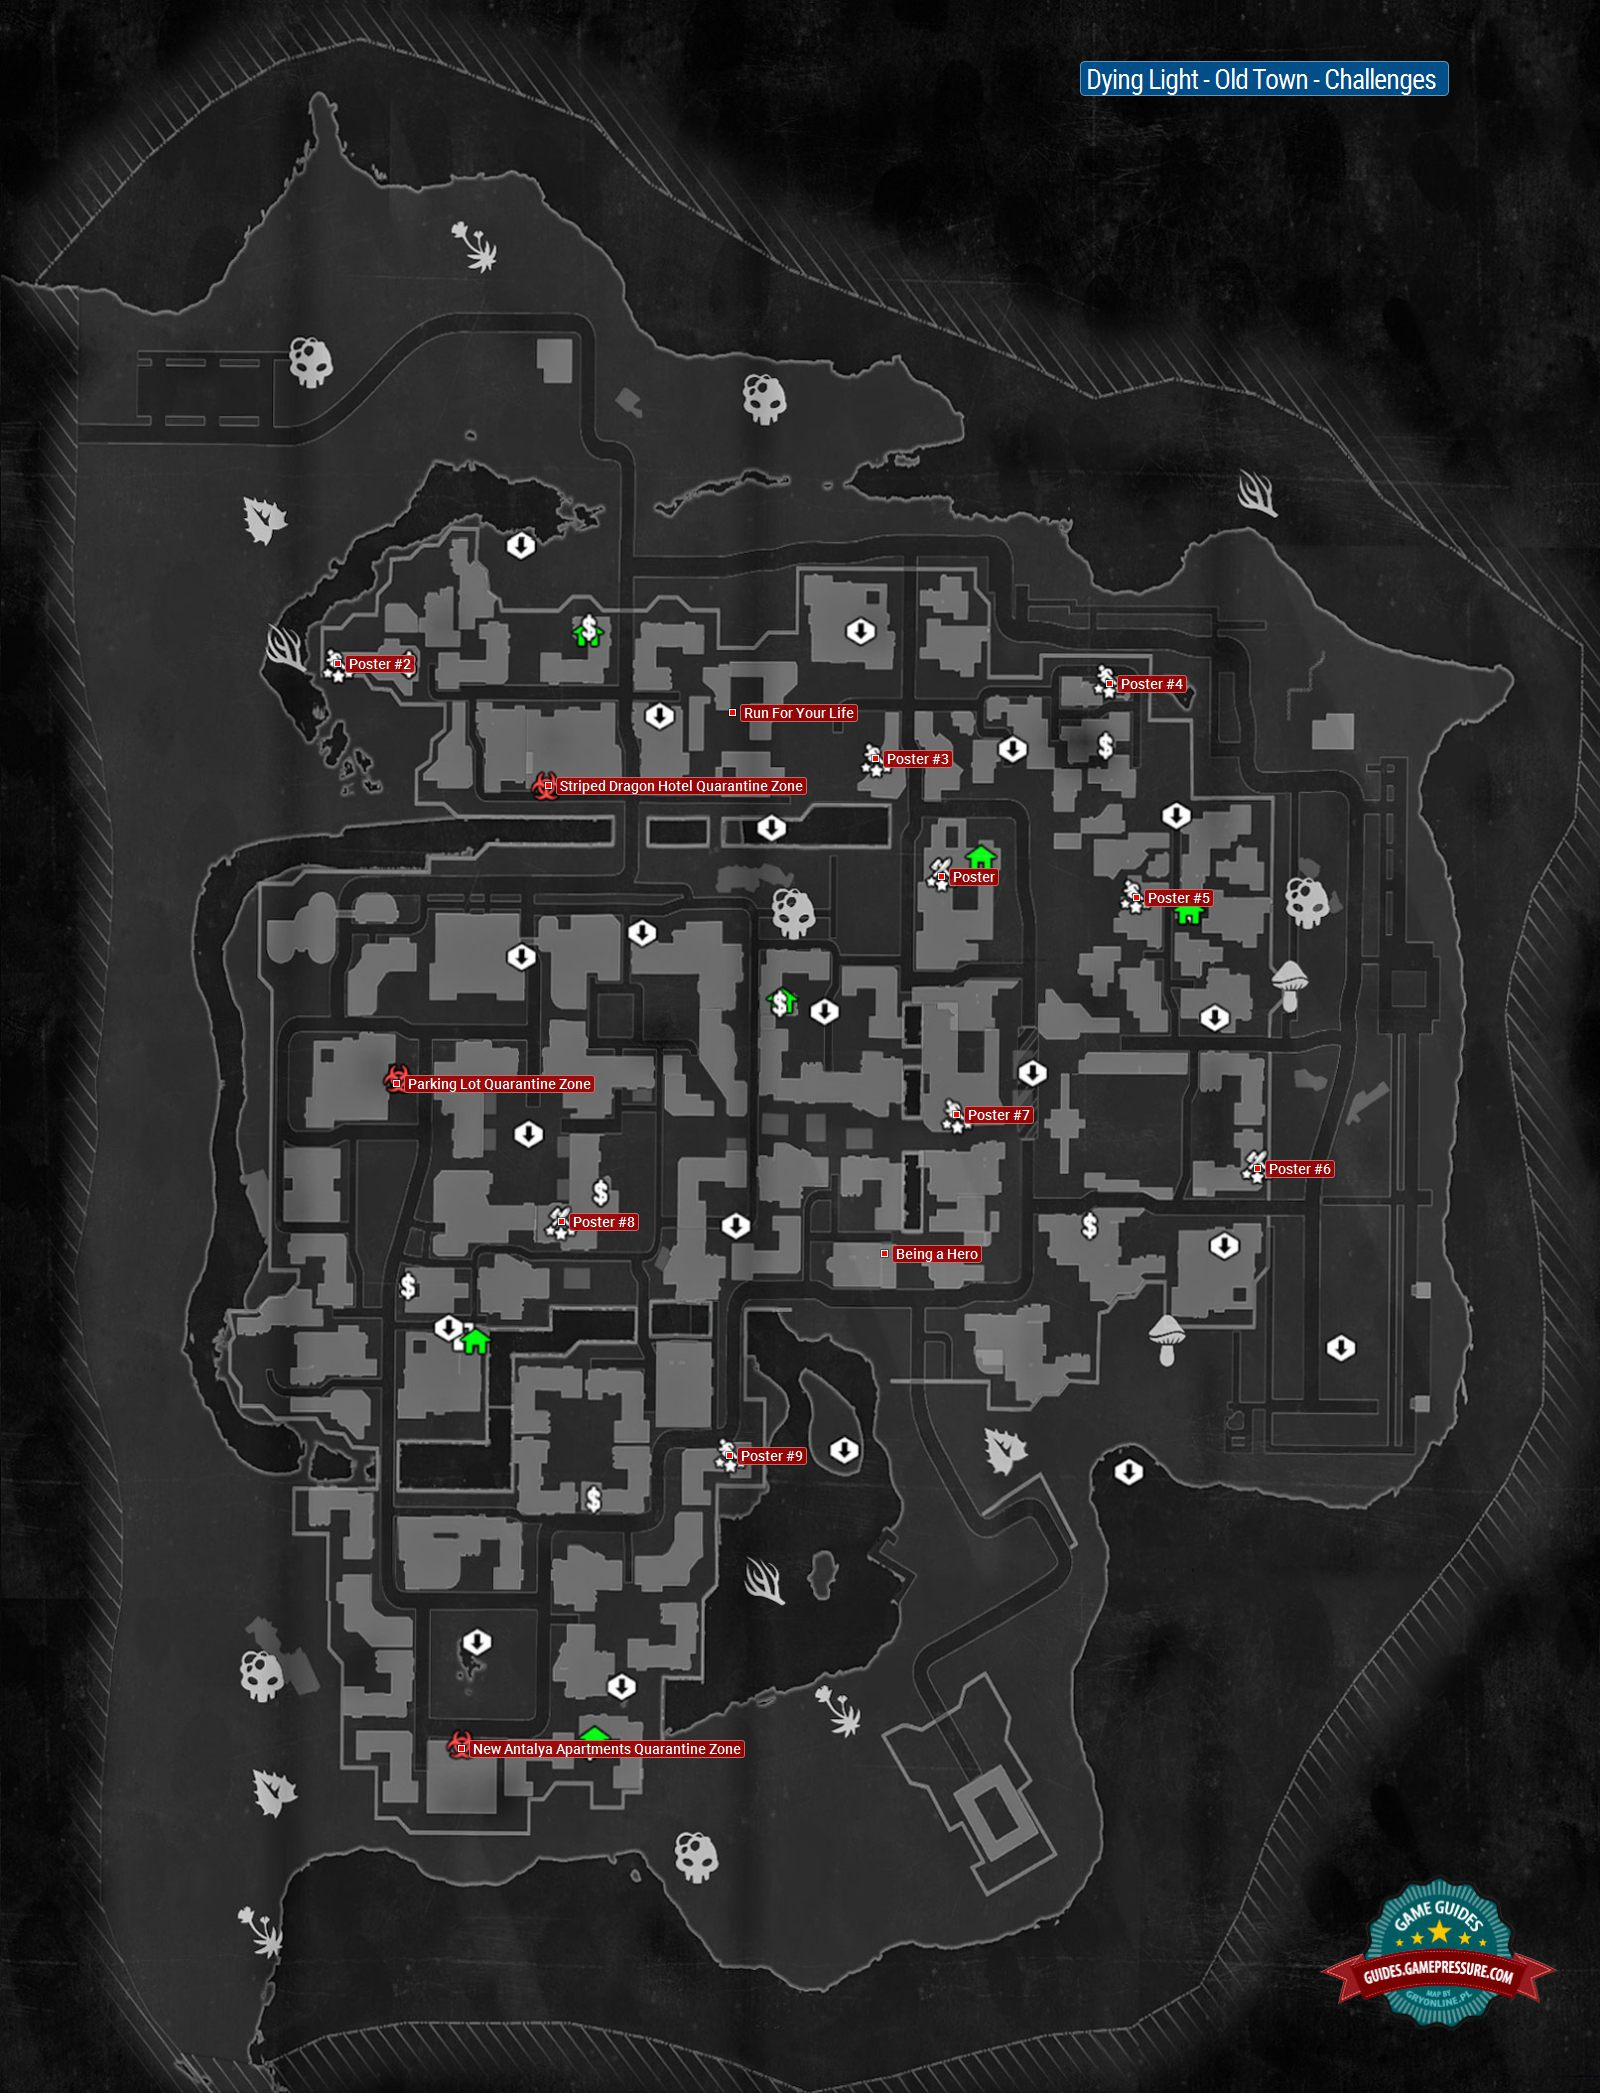 Old Town Challenges Dying Light Game Guide